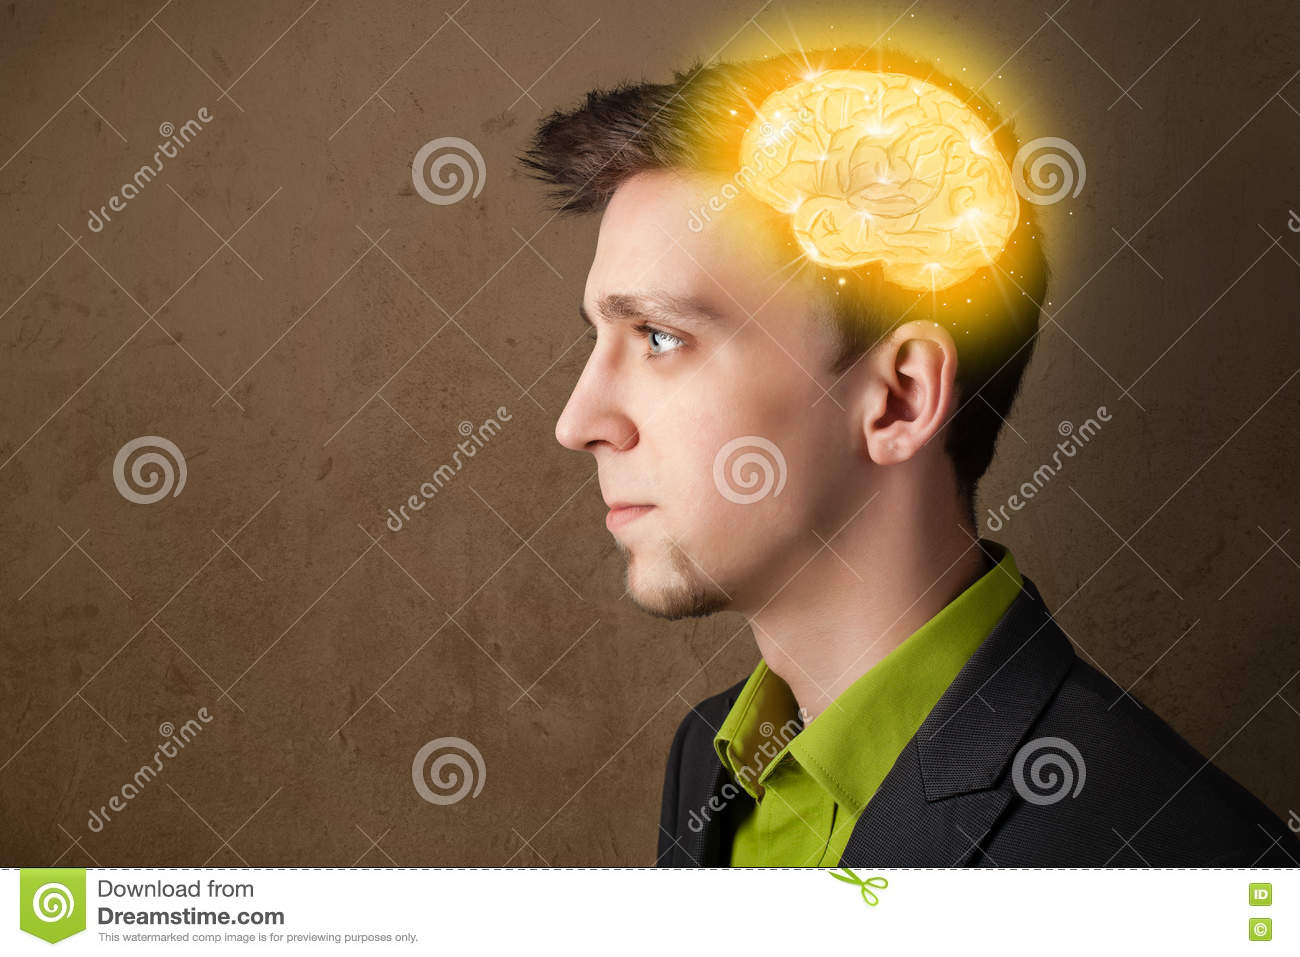 Download Man Thinking With Glowing Brain Illustration Stock Image - Image of expression, brain: 72975989